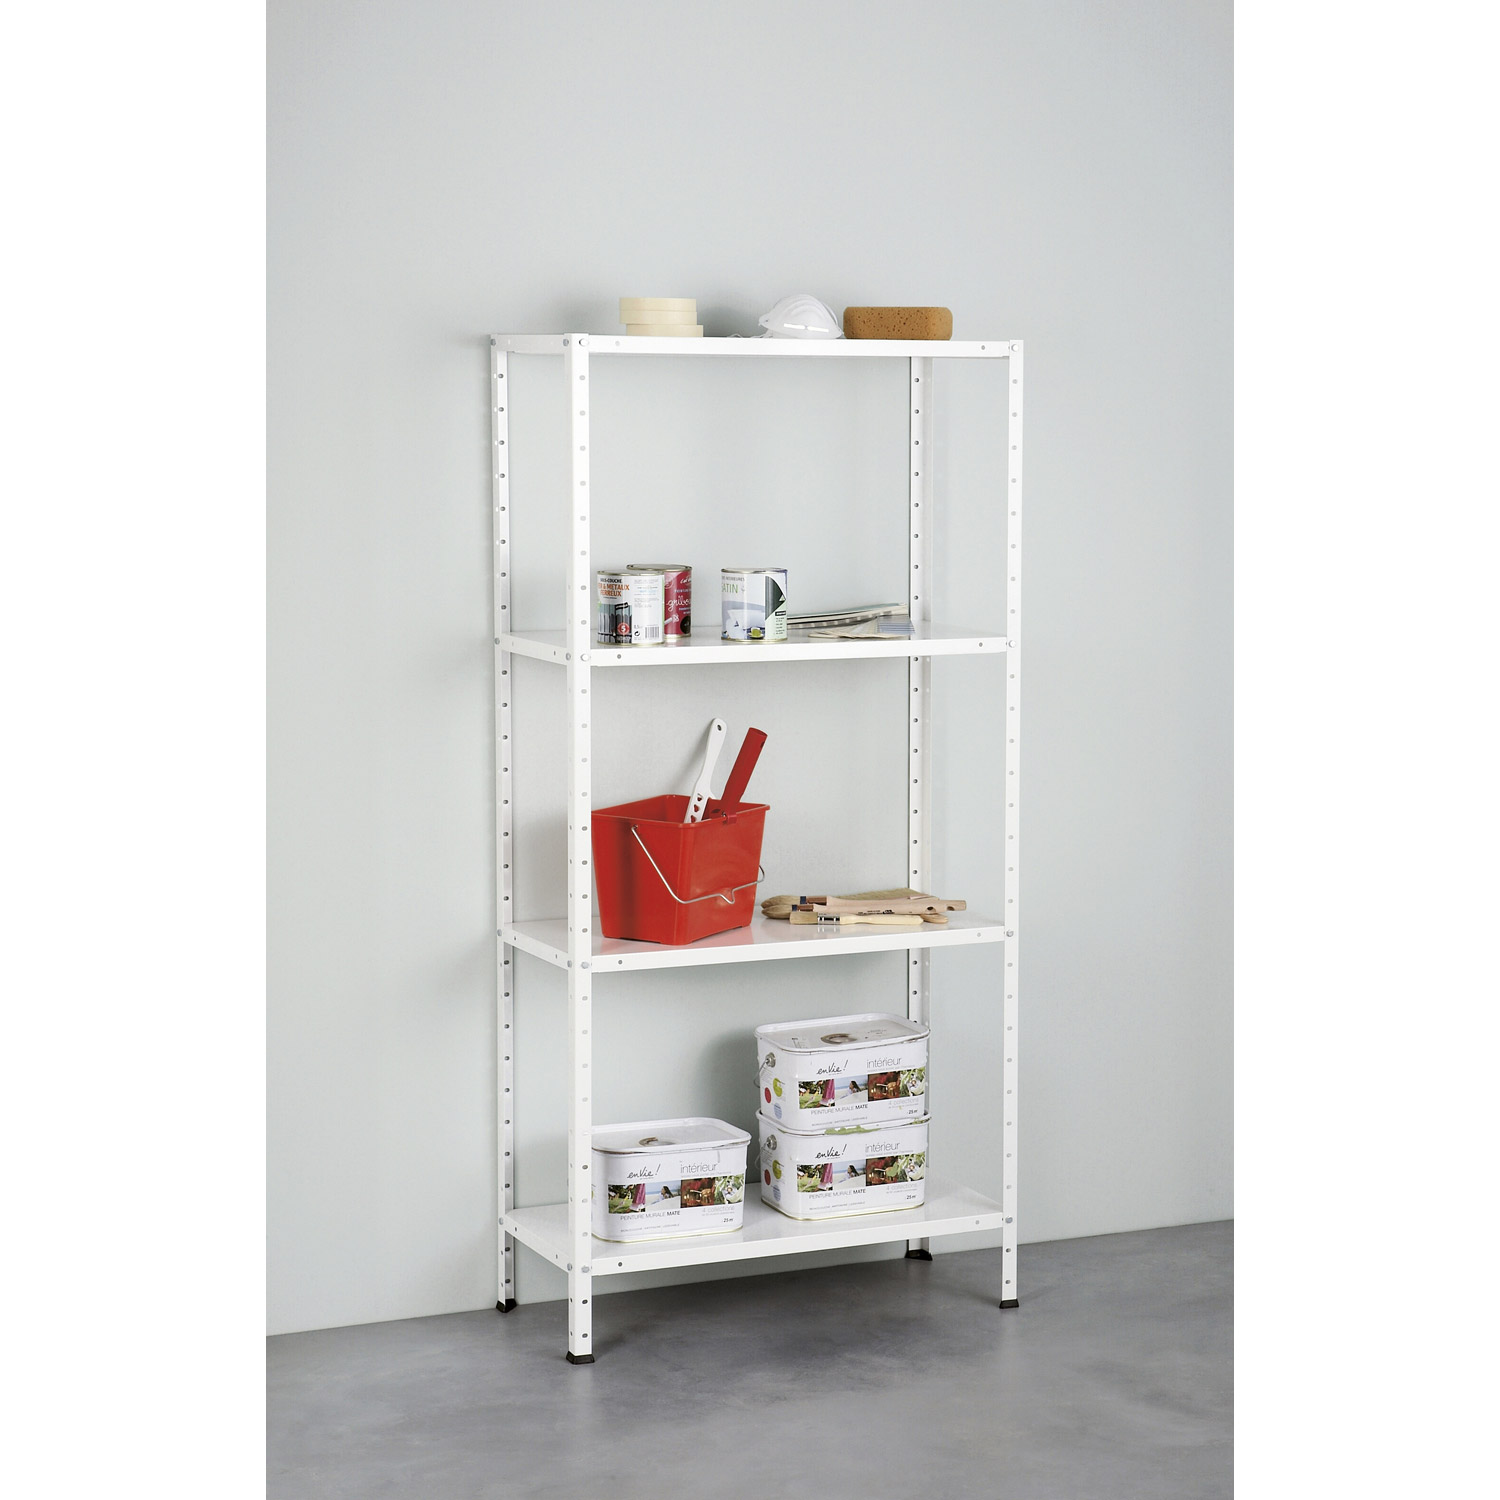 etagere leroy merlin affordable with etagere leroy merlin fabulous etagere leroy merlin with. Black Bedroom Furniture Sets. Home Design Ideas